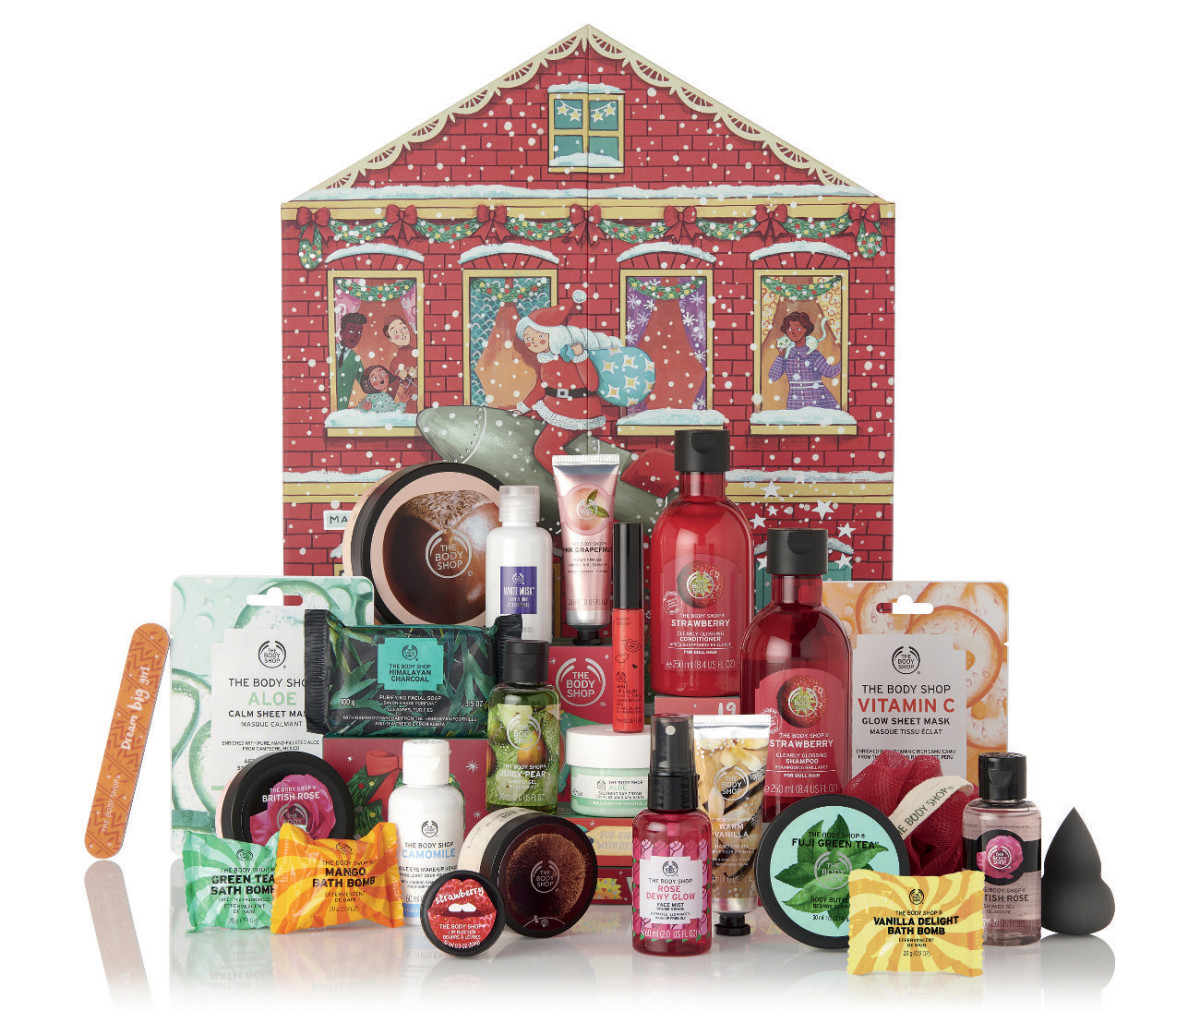 The Body Shop 2019 Dream Big This Christmas Deluxe Beauty Advent Calendar (online only)